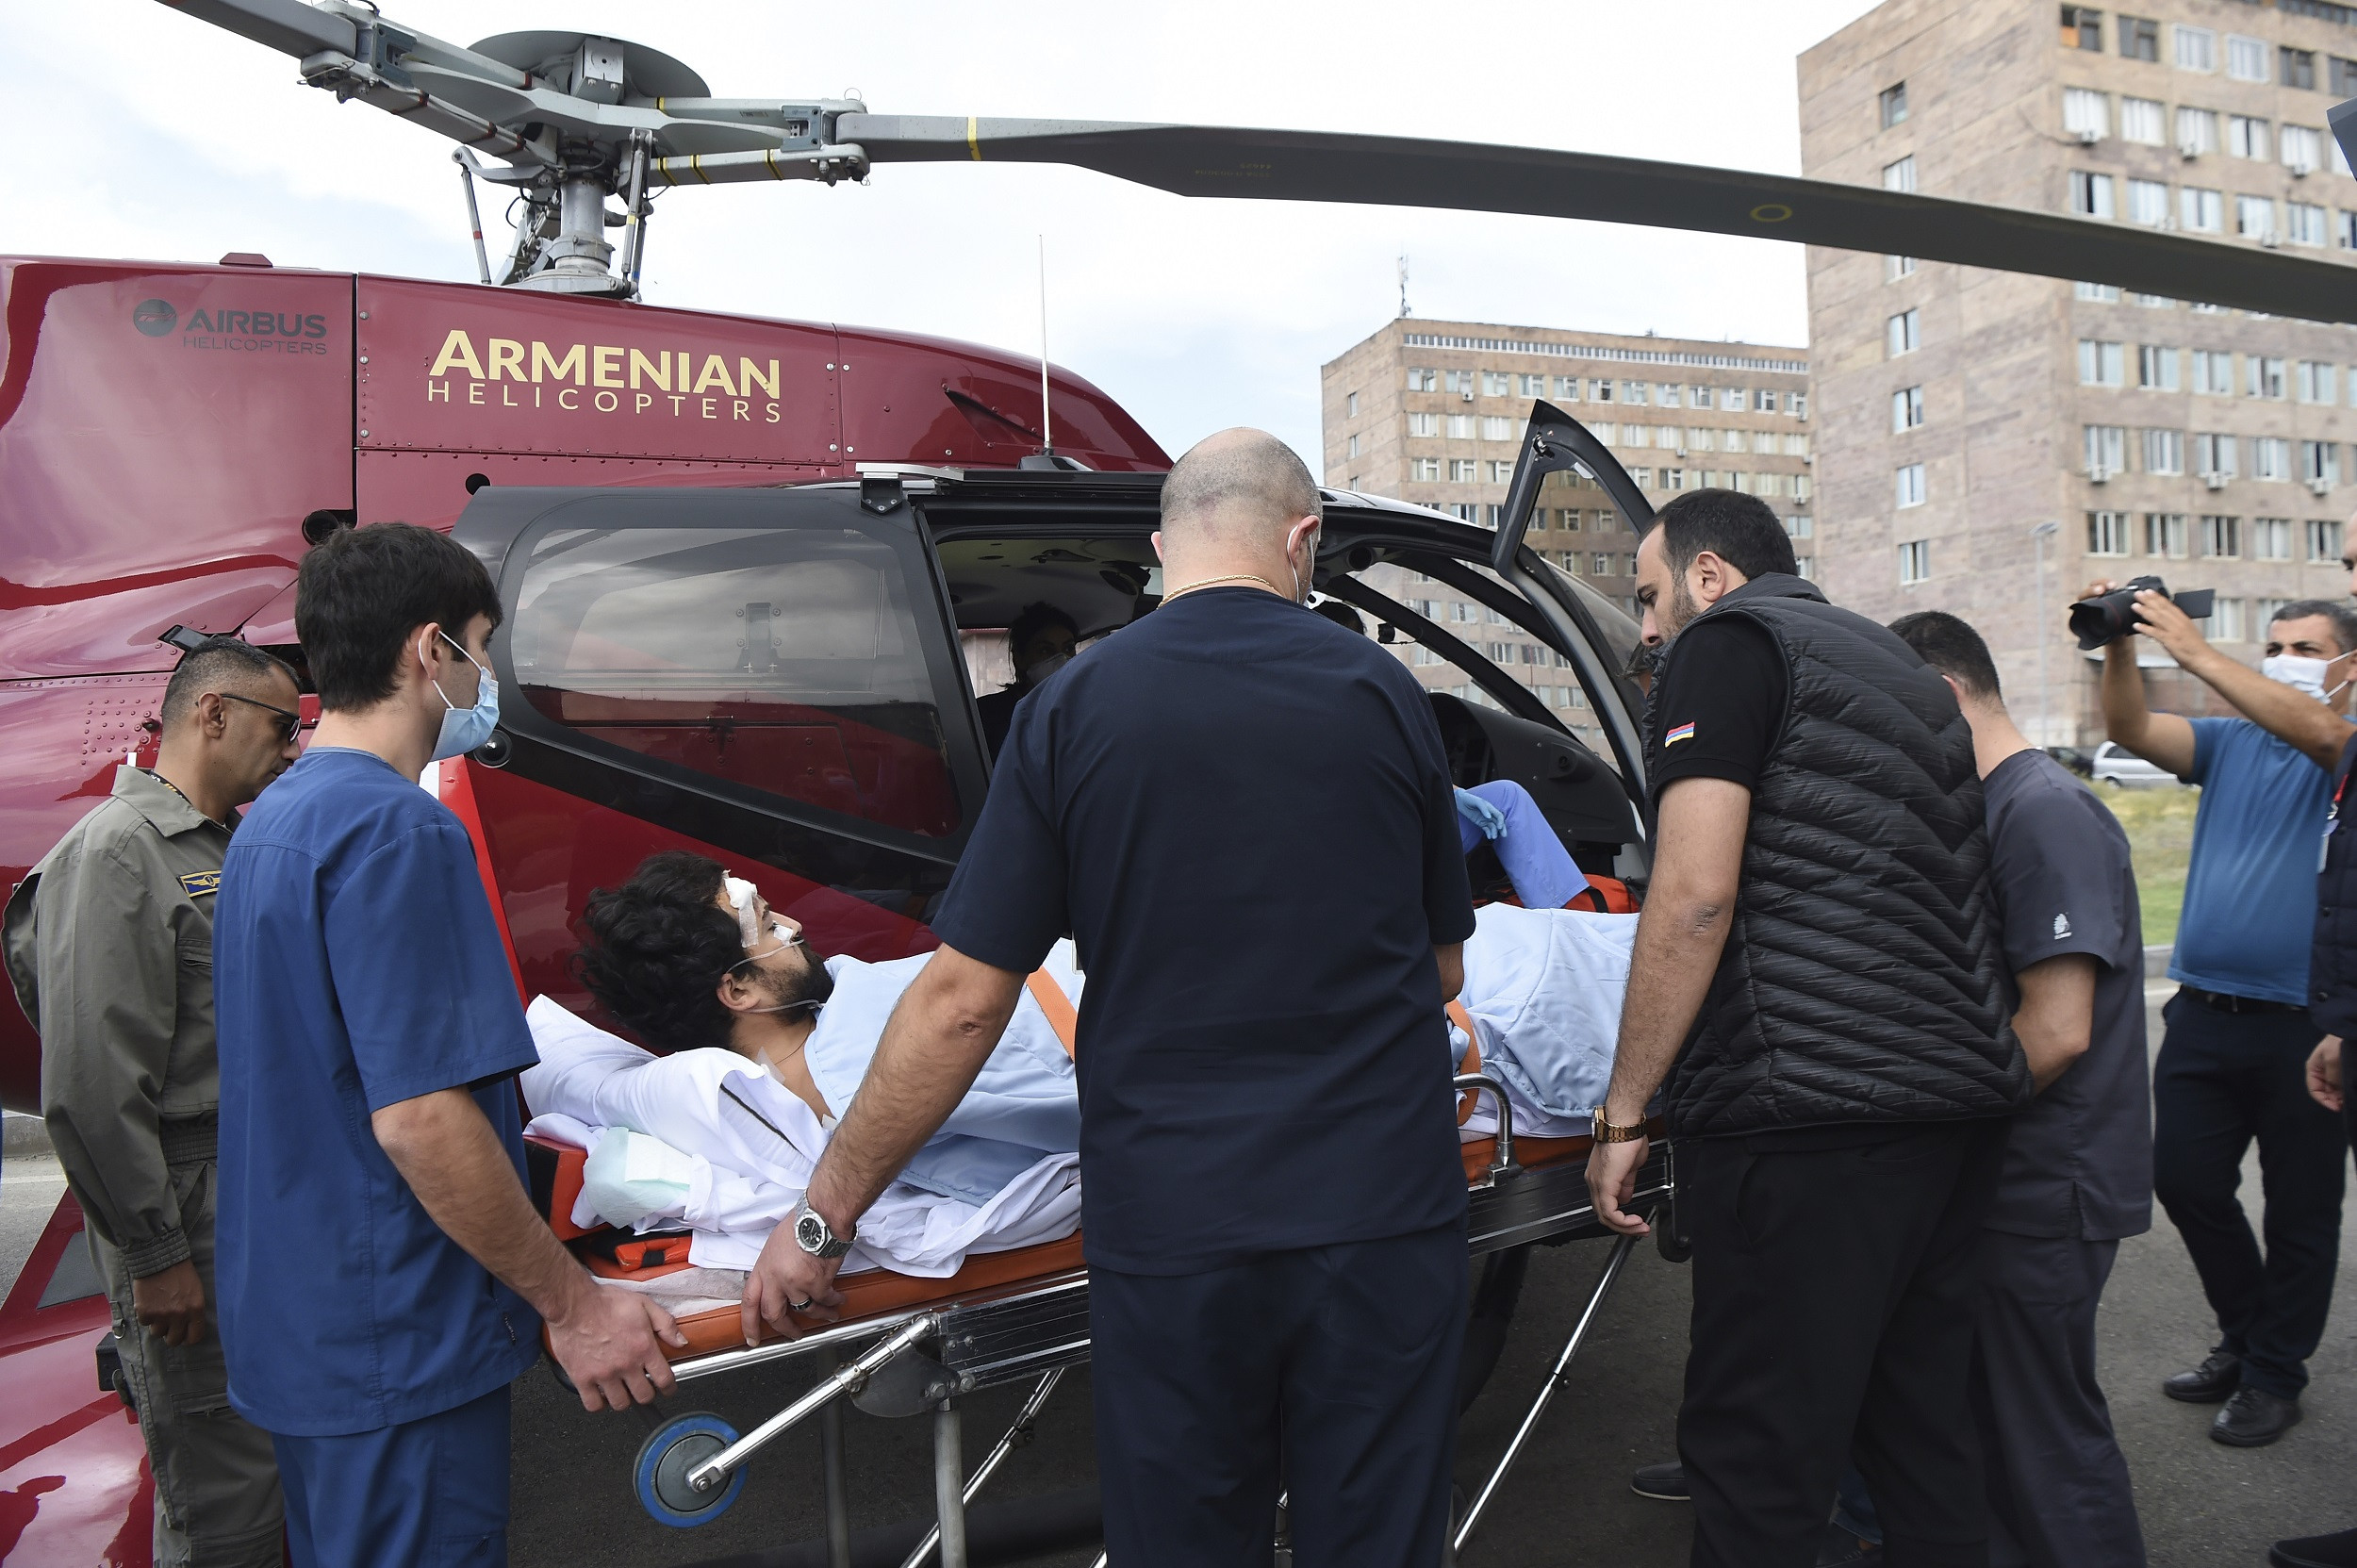 French journalist targeted by Azerbaijan, airlifted to hospital.